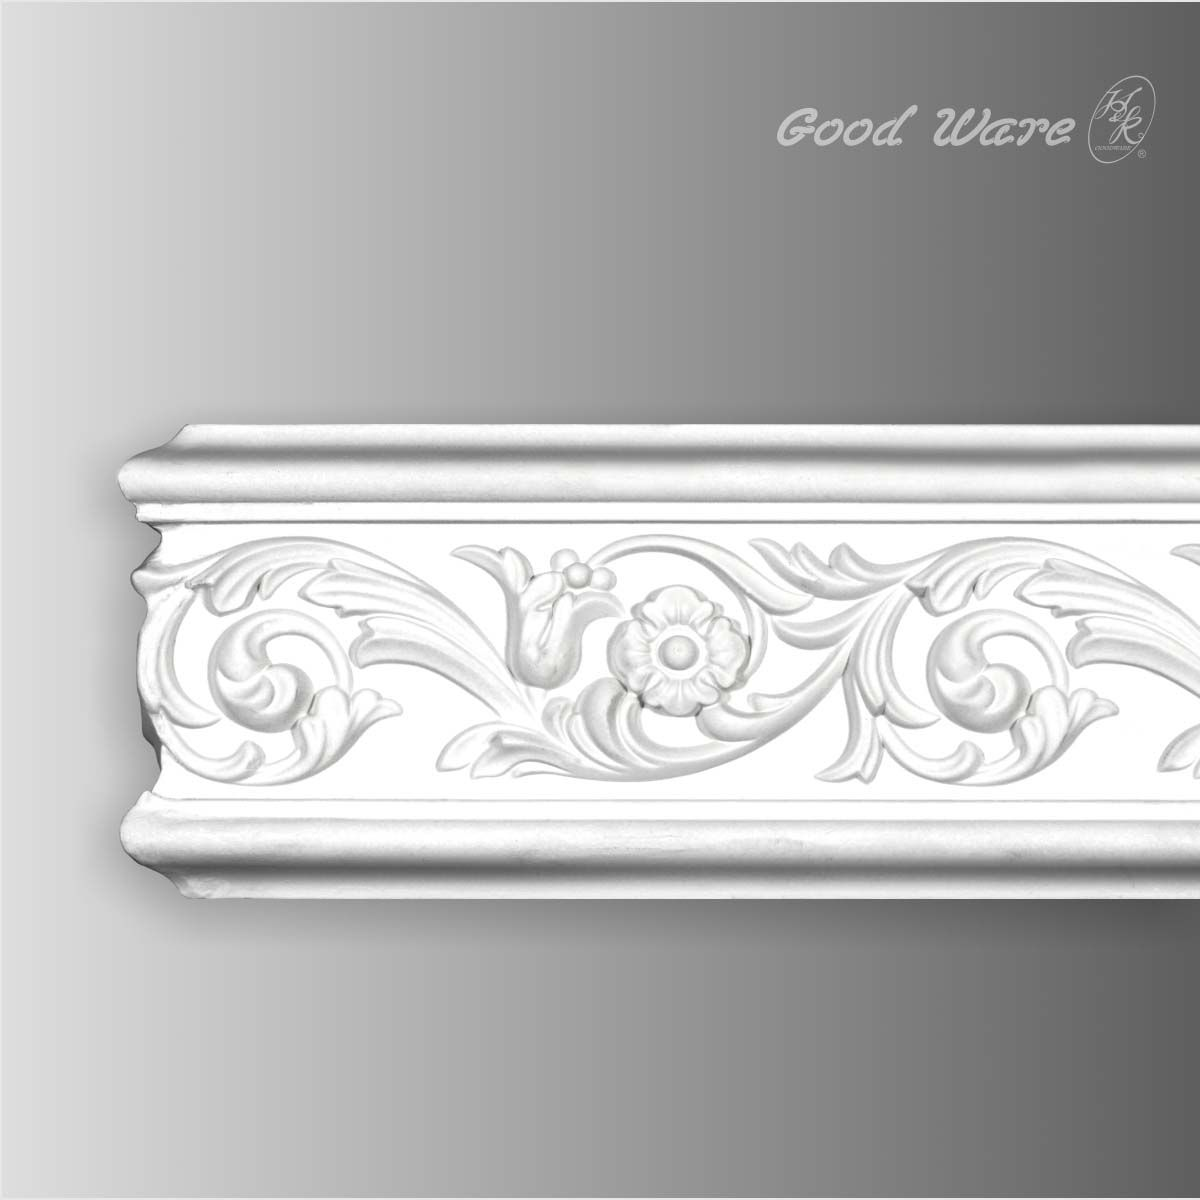 Decorative Wall Molding polyurethane decorative wall chair rail molding is 4-5/16''h x 13